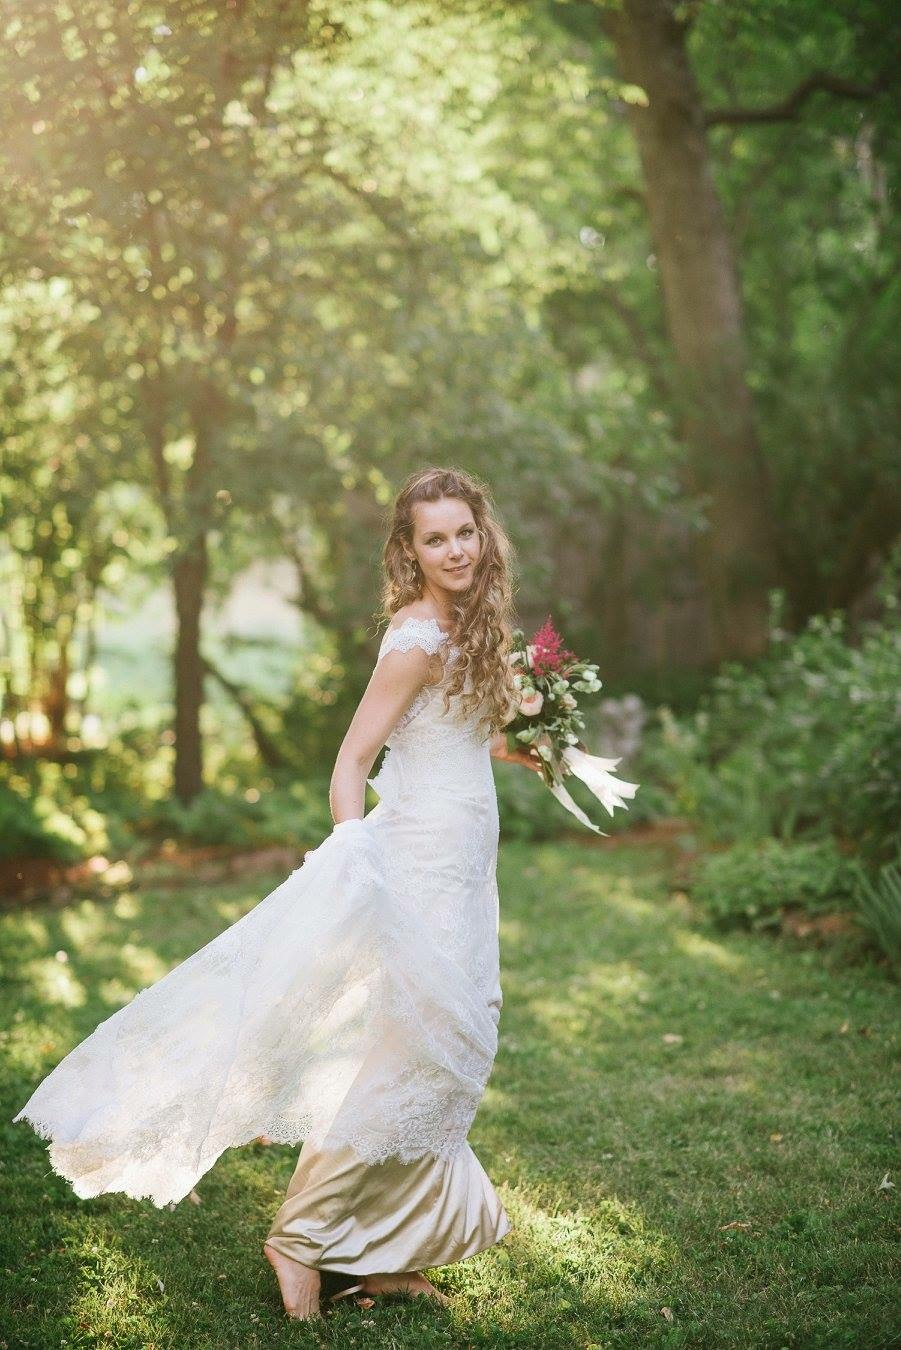 sunlight through trees on twirling bride